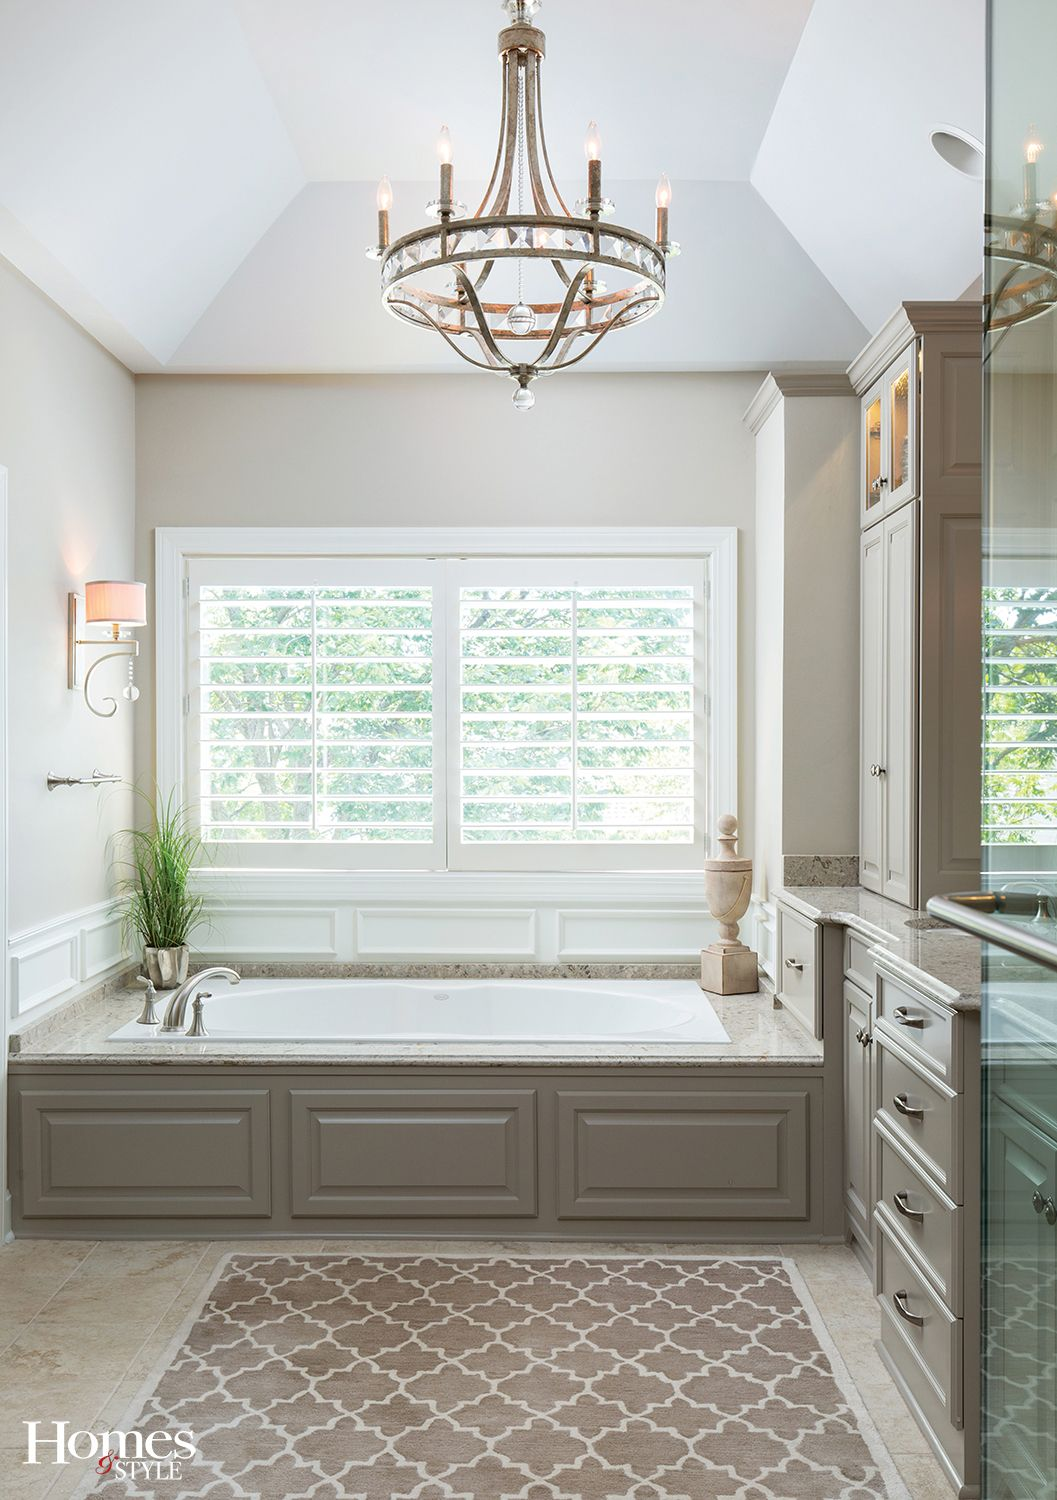 Pin By Jamie Longacre On Home Bath And Kitchen Ideas Bathroom Remodel Master Home House Styles [ jpg ]